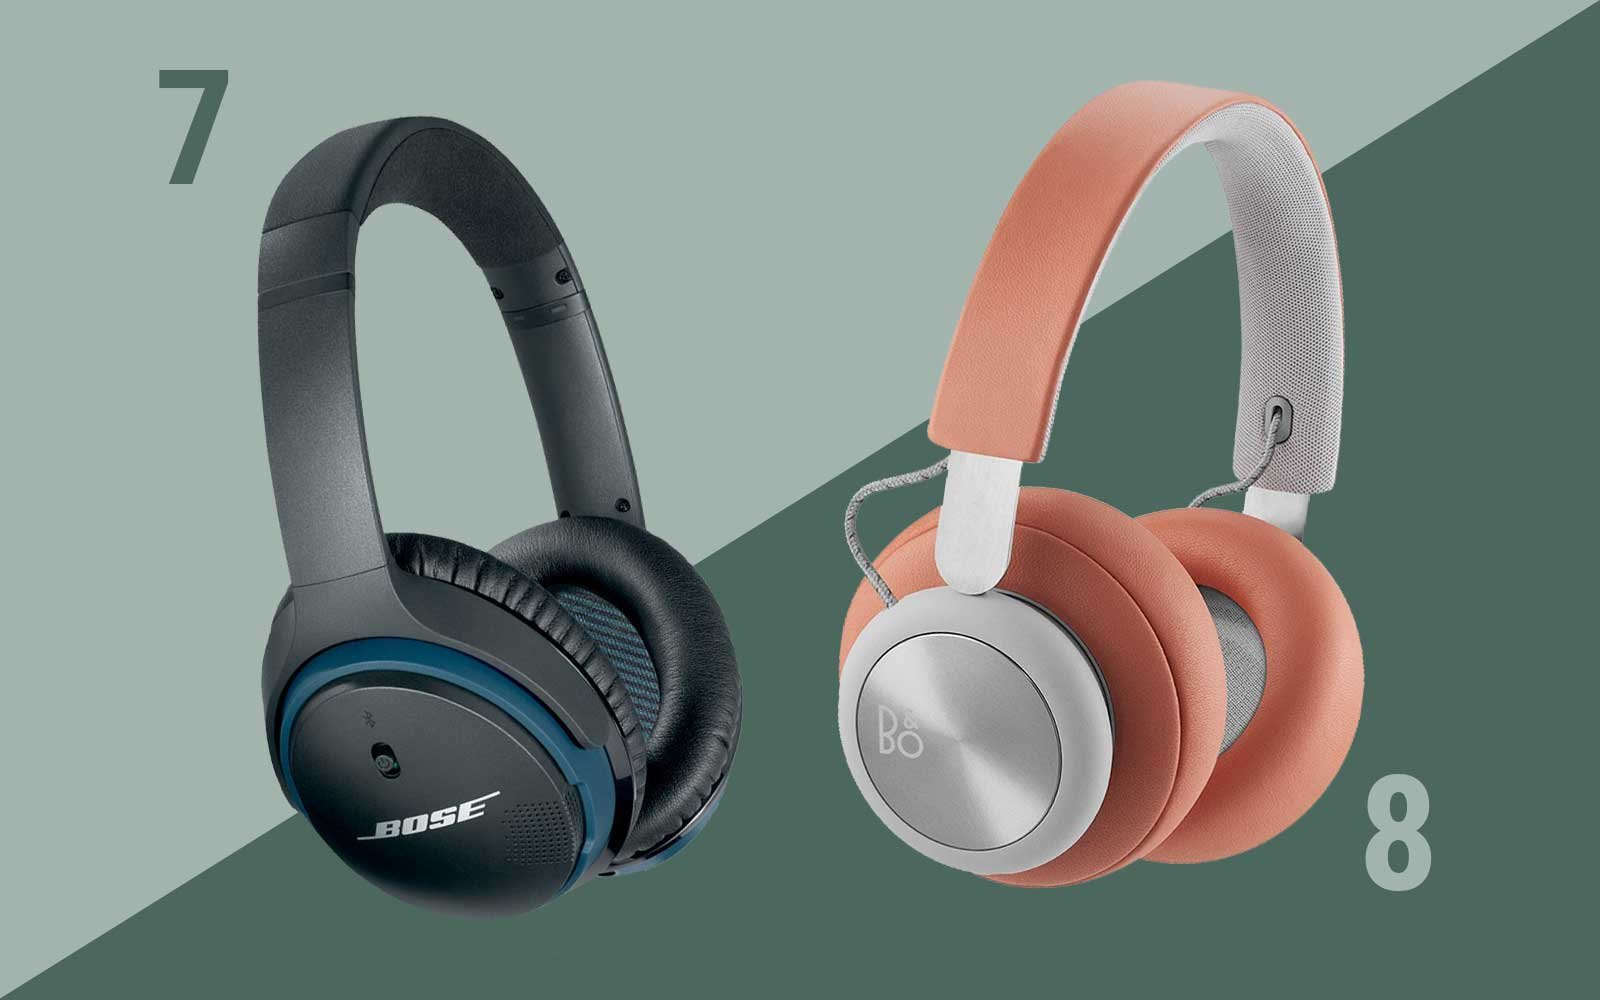 The Best Over-the-ear Wireless Headphones